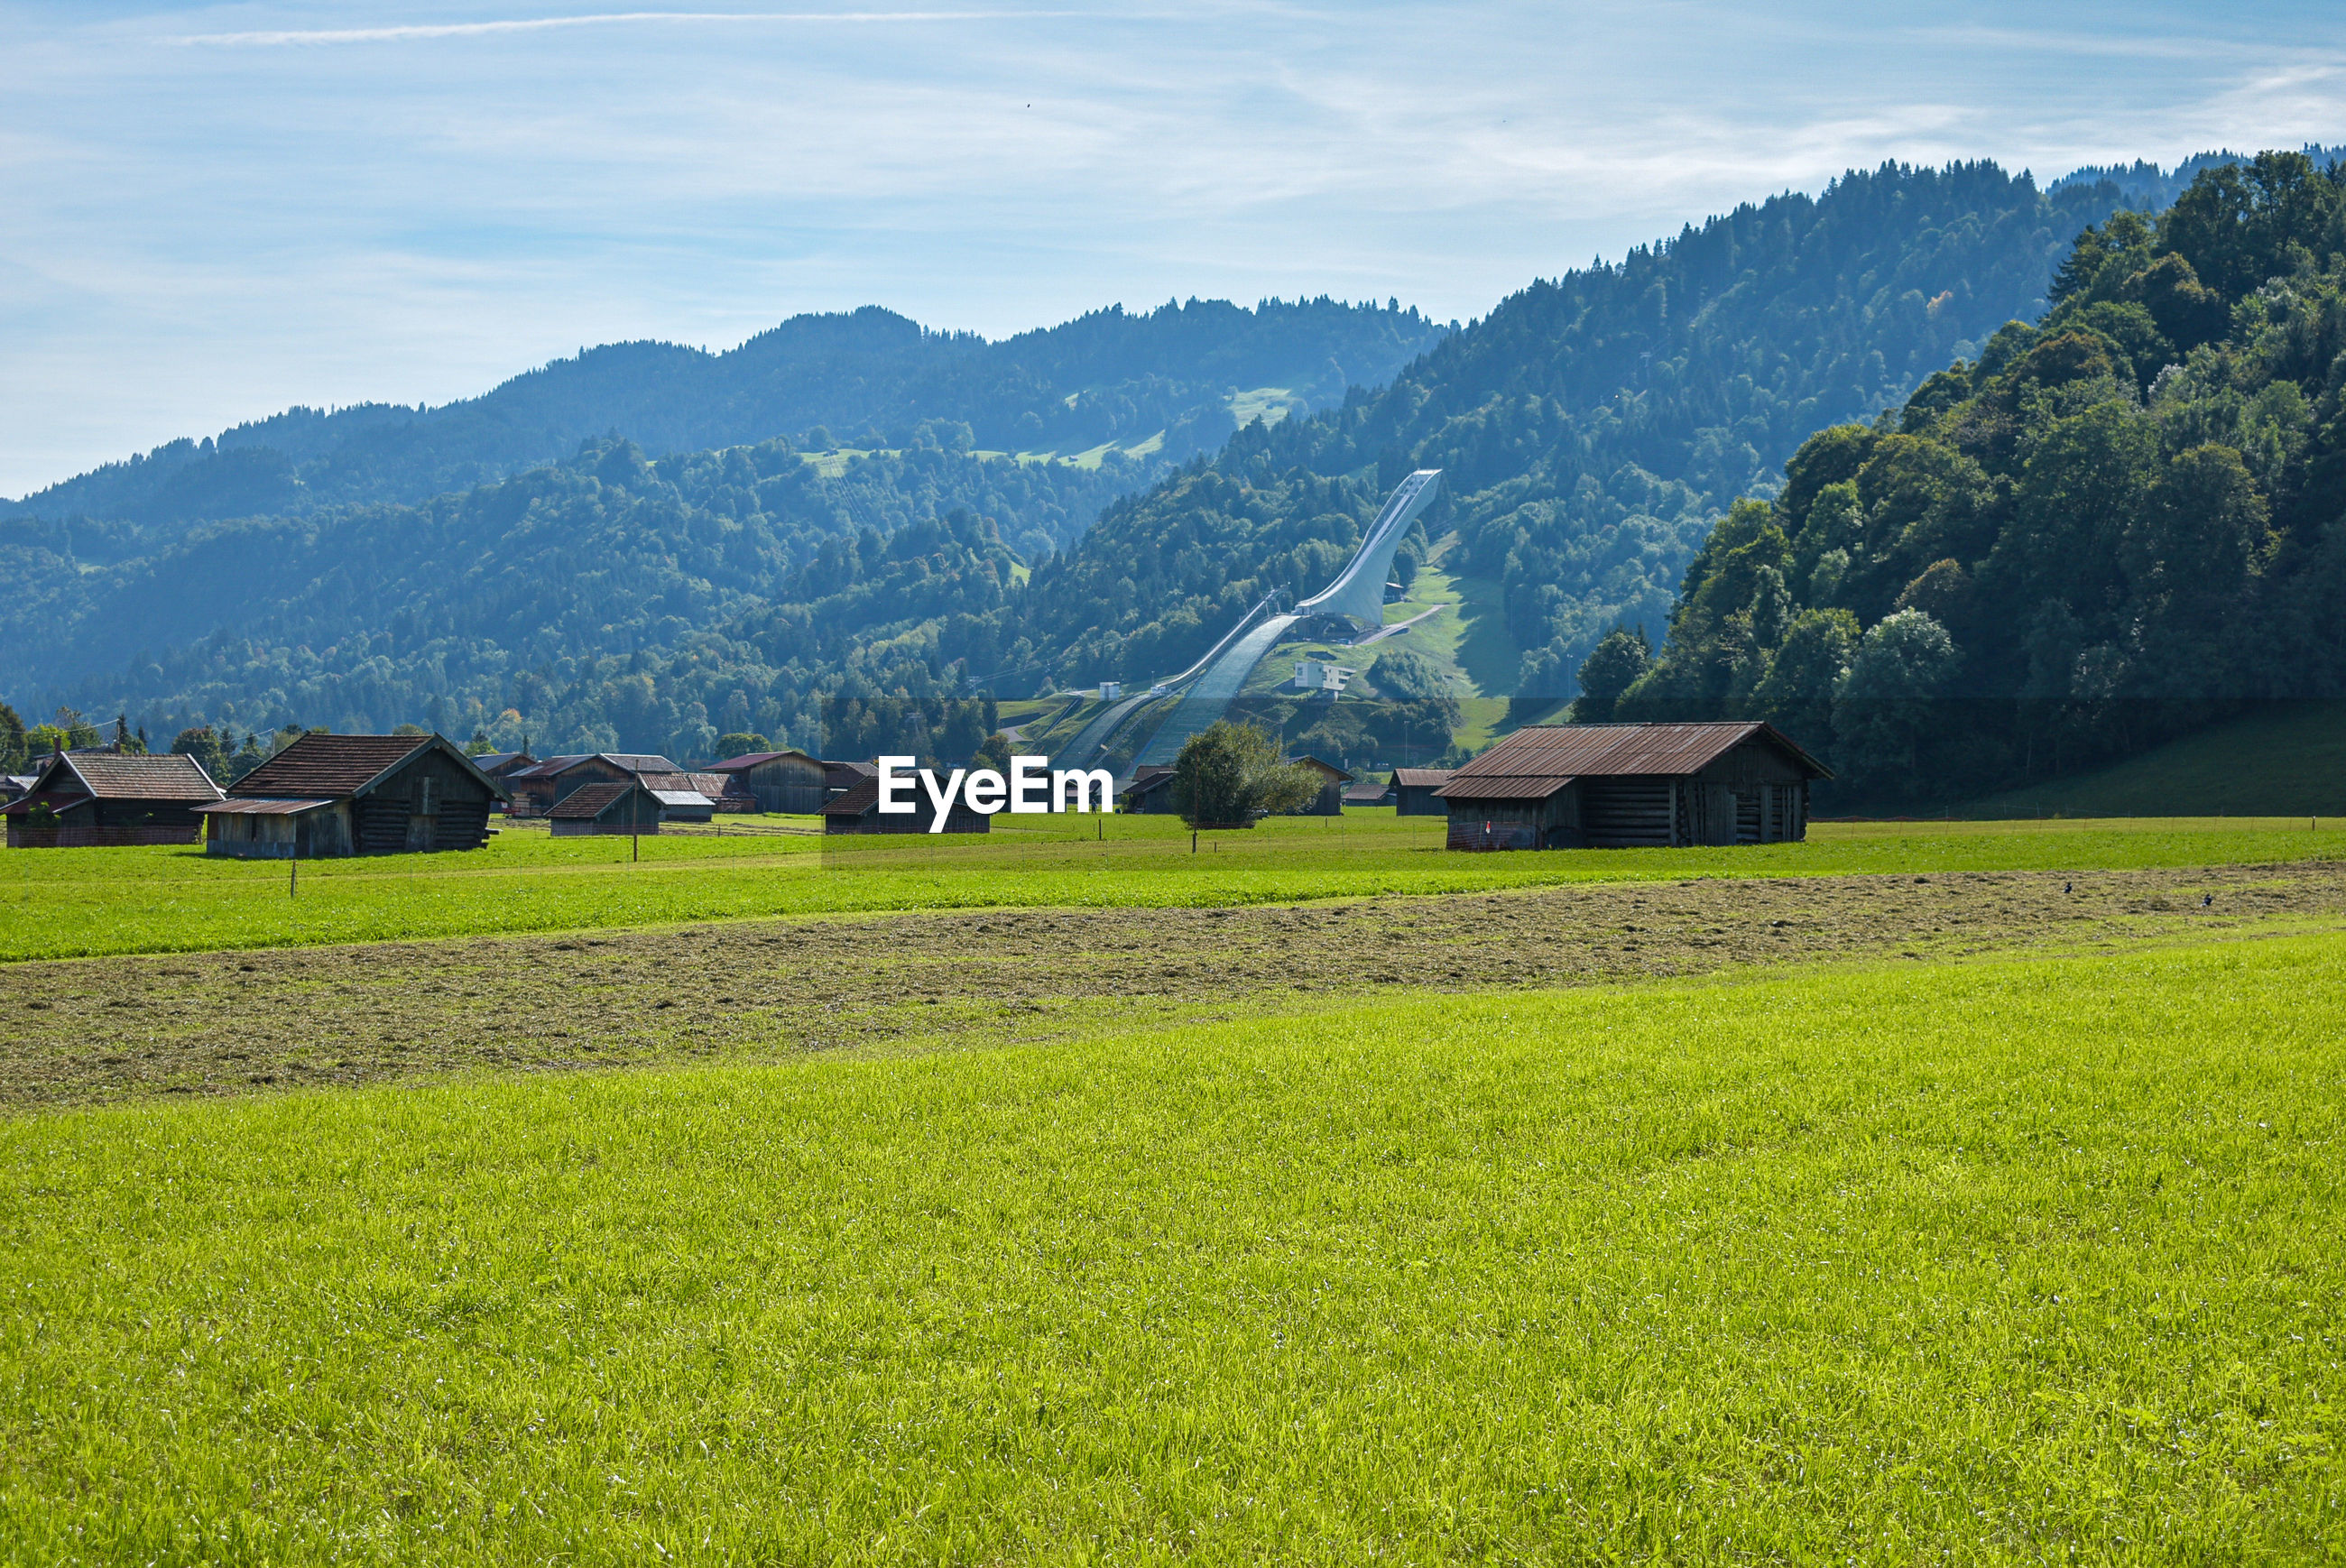 Scenic view of agricultural field by houses and mountains against sky